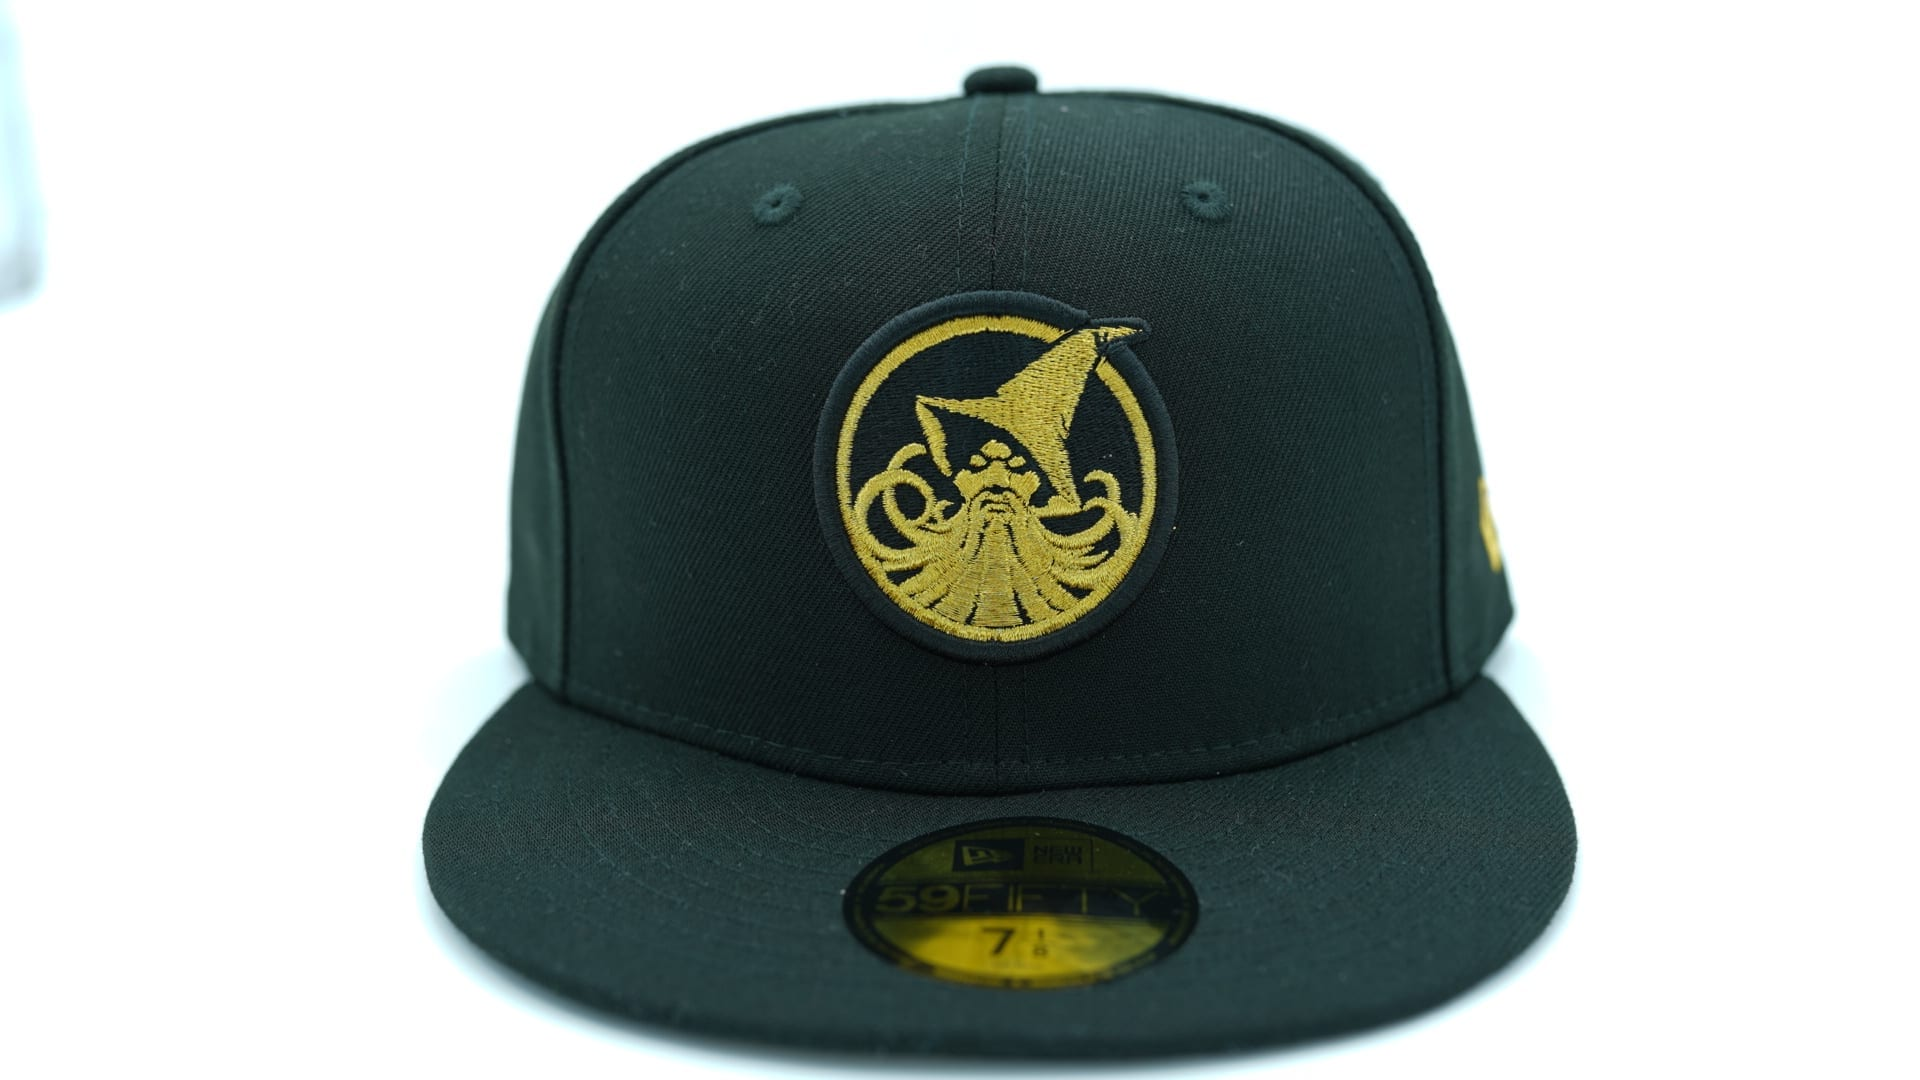 dd2f3c07879 Wake Forest Classic 99 Fitted Baseball Cap by Nike